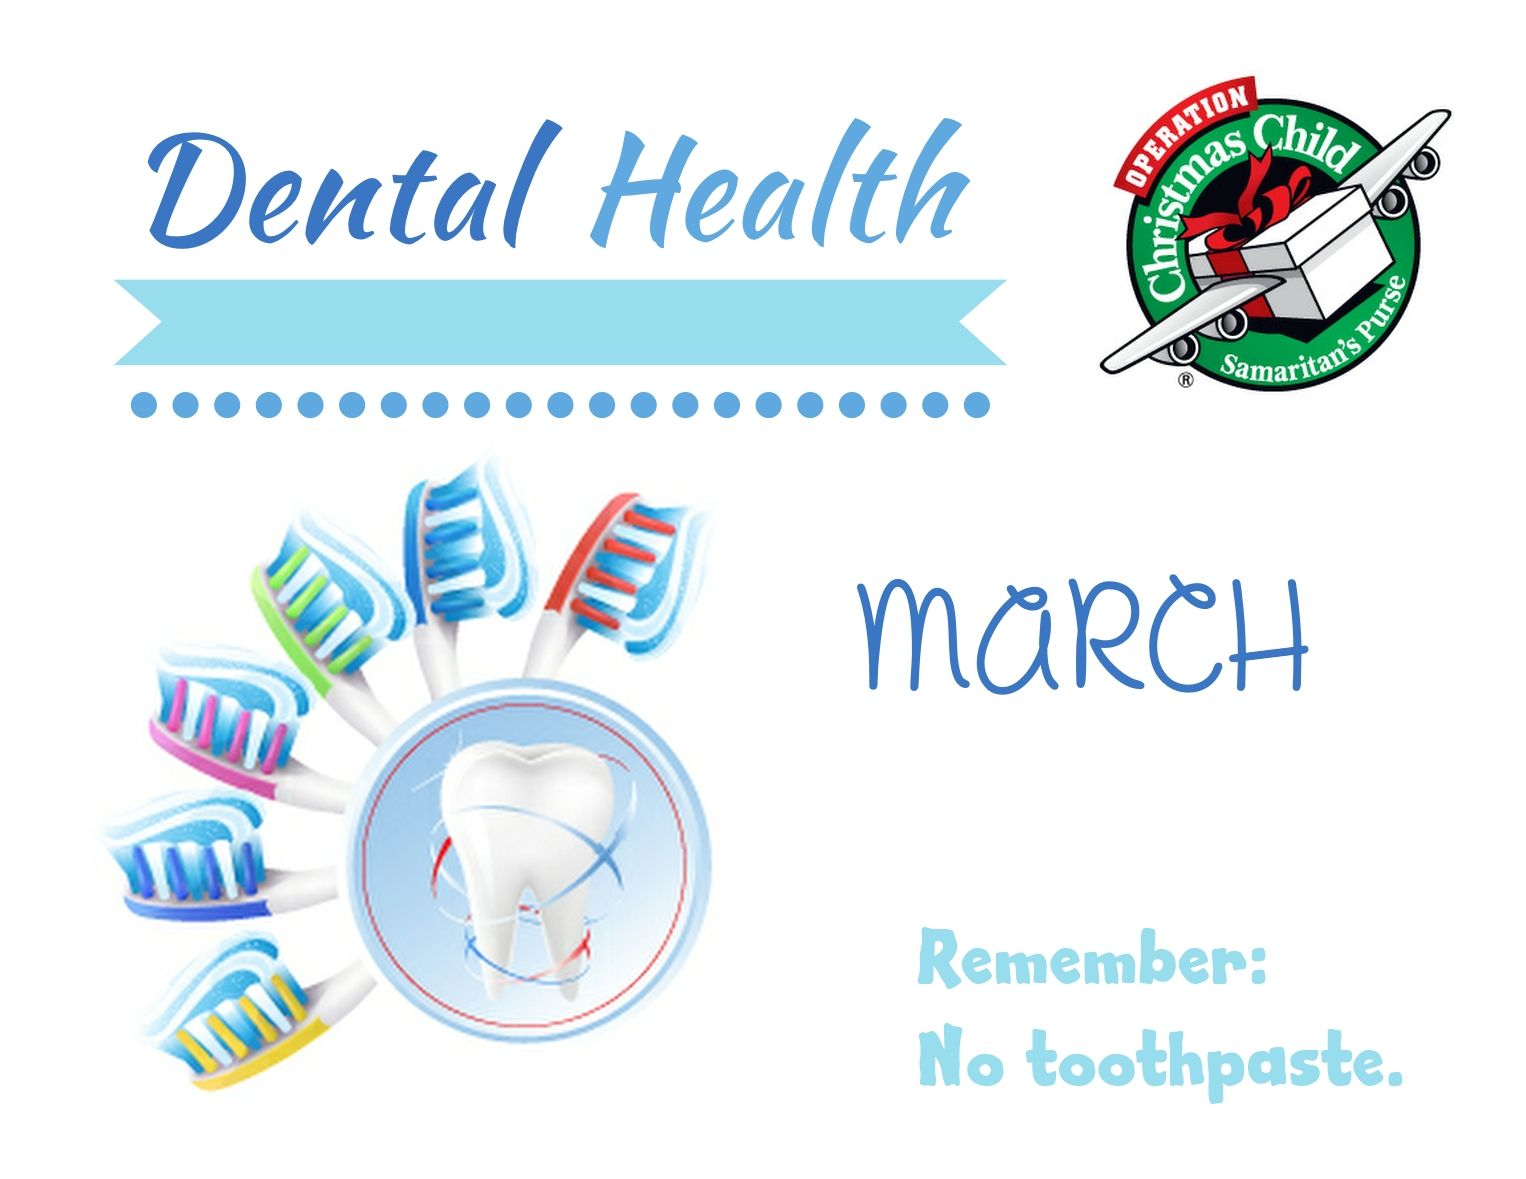 In February, we focus on dental hygiene items, like toothbrushes ...